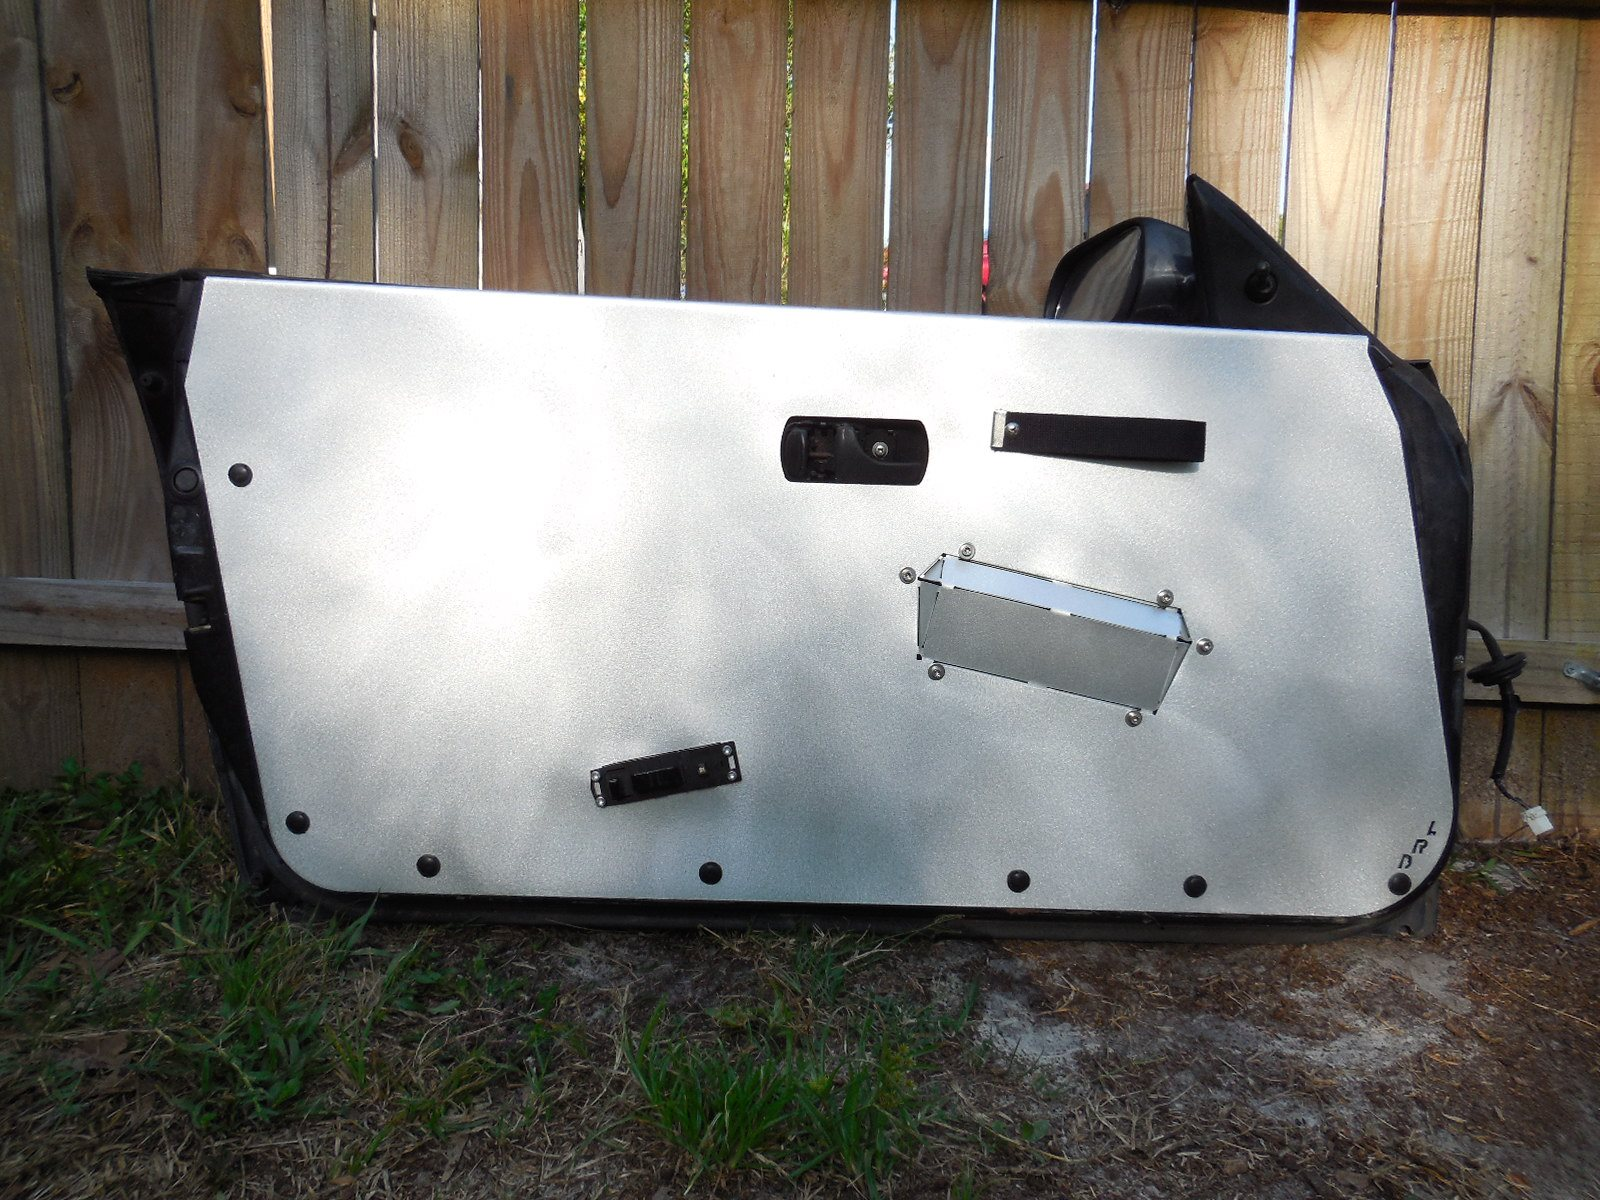 S13 240sx Aluminum Door Panels